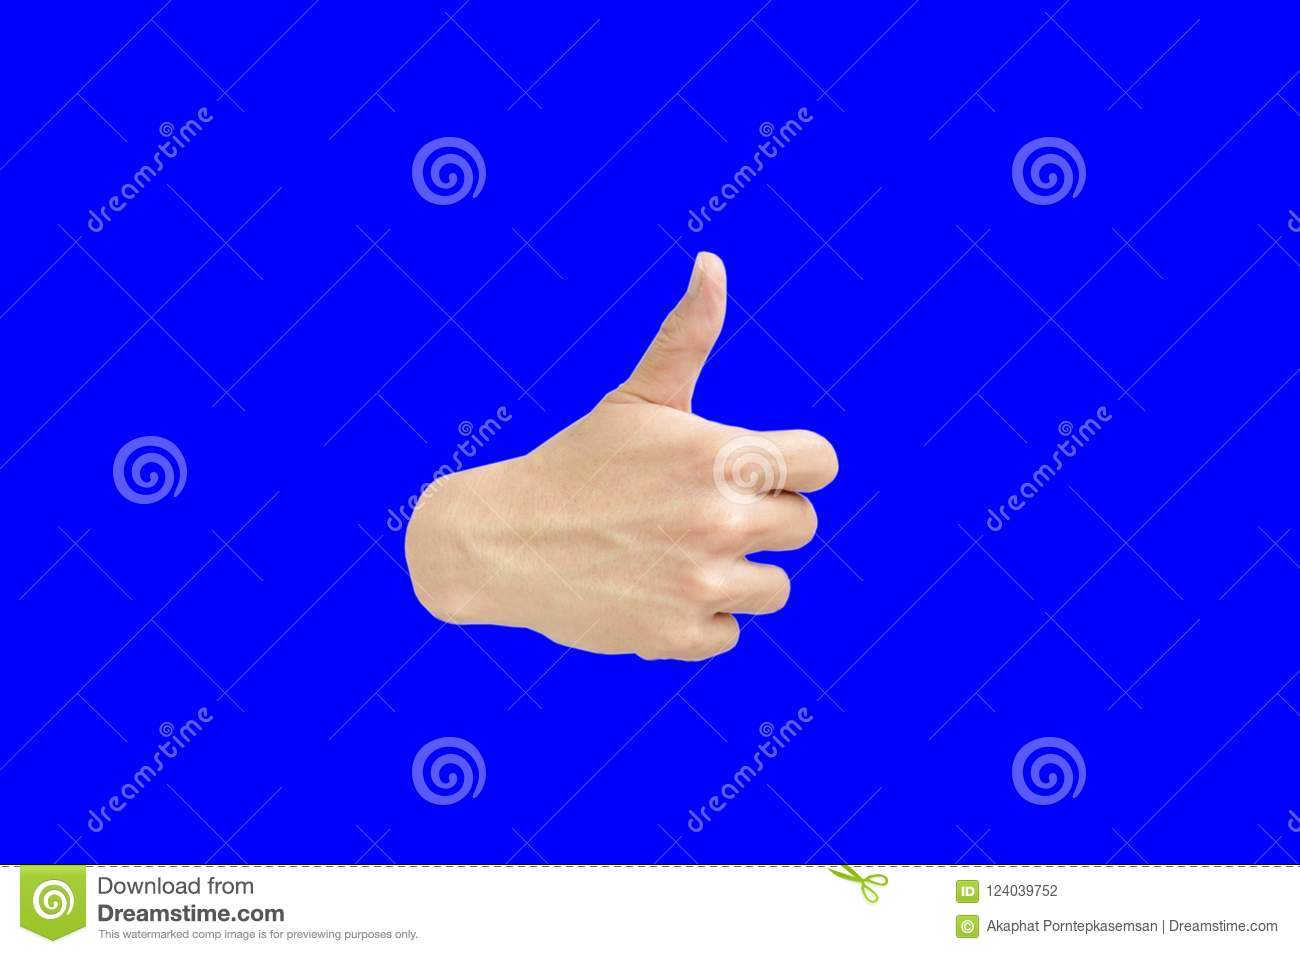 hand thumb up on blue background